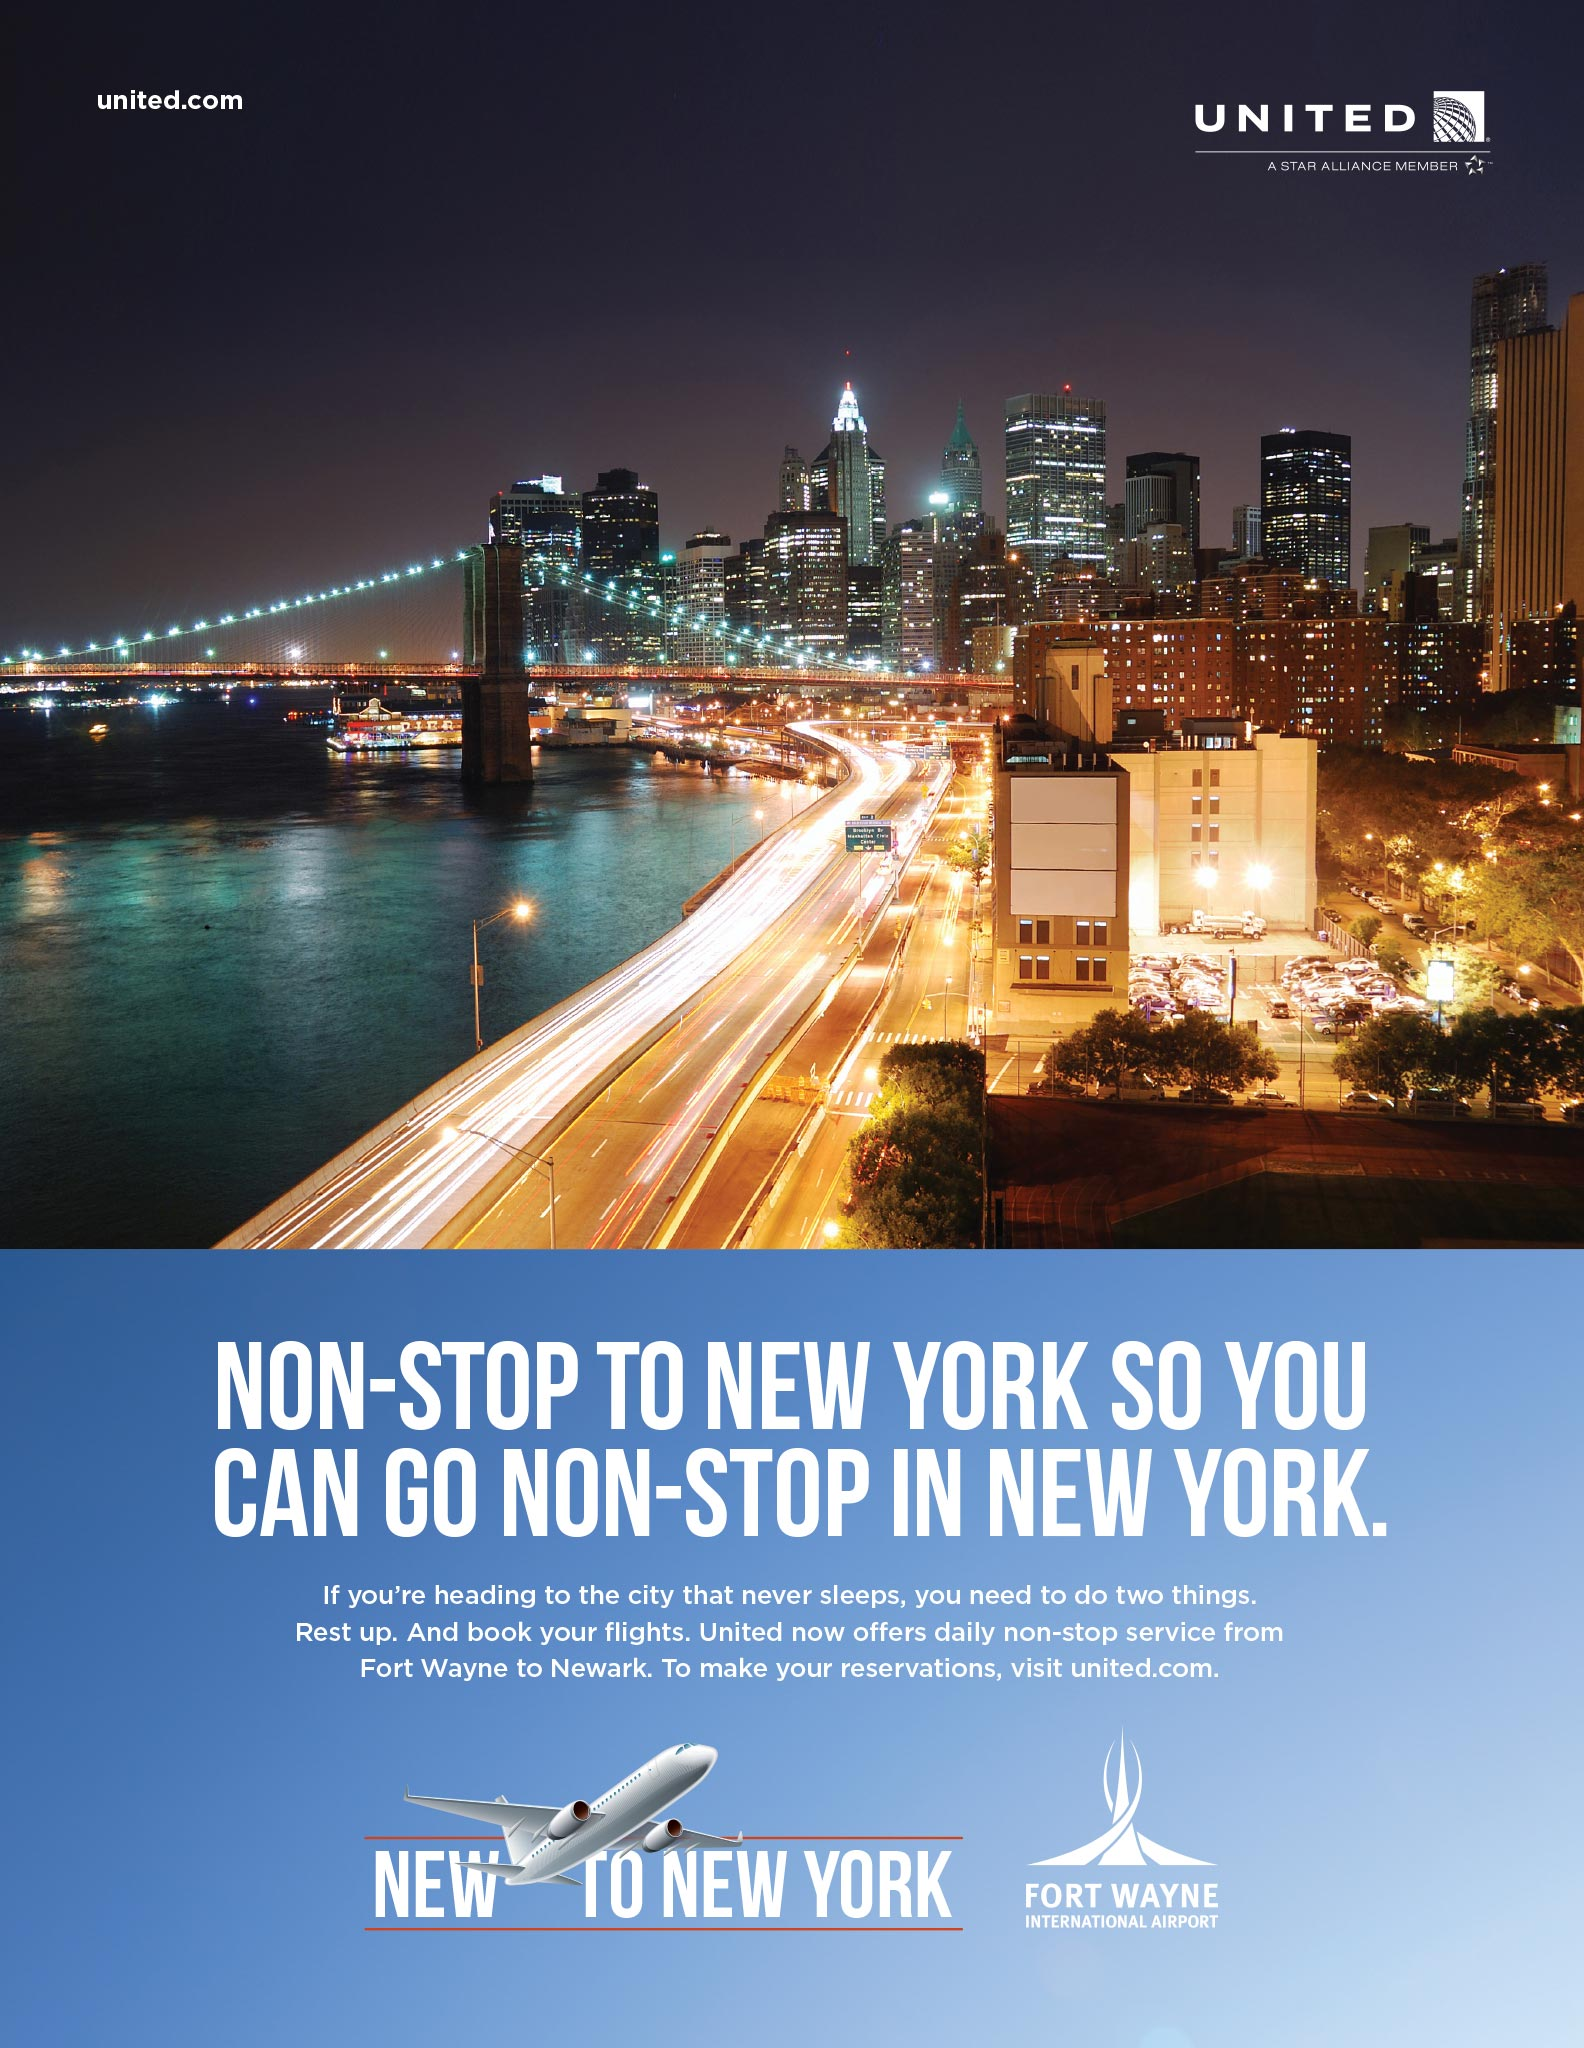 Fort Wayne International Airport, New to New York Print Ad